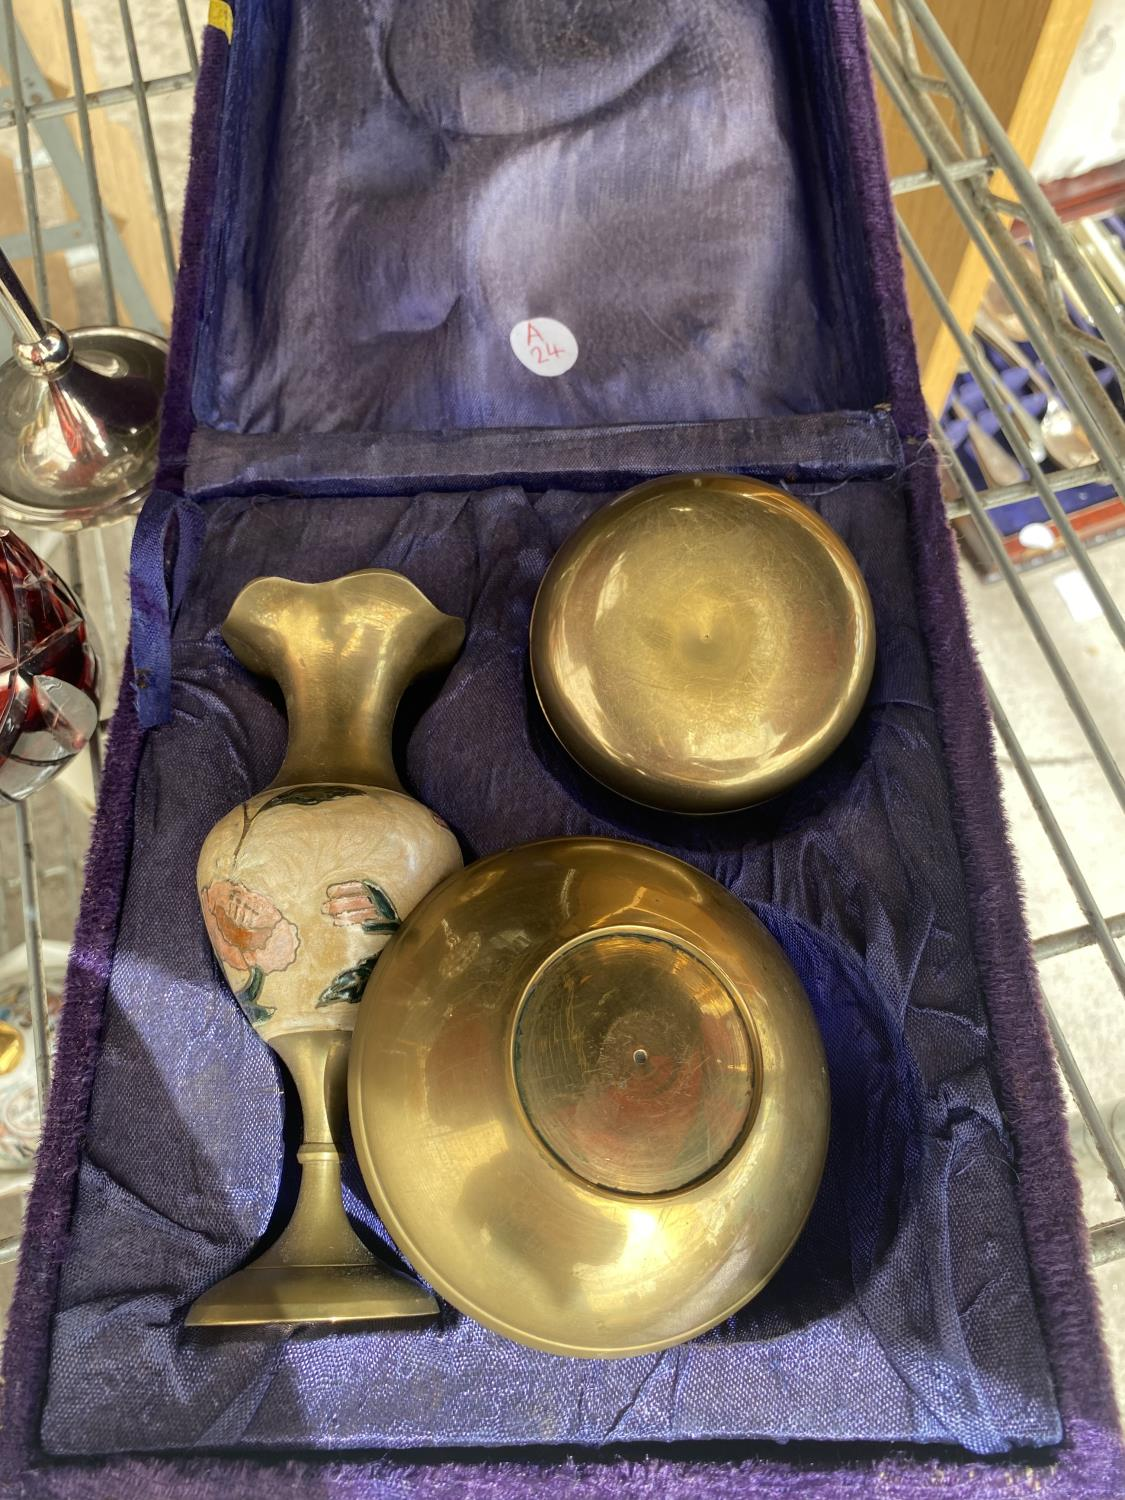 A BOXED BRASS VASE, TRINKET DISH AND TRINKET BOWL, WITH A SUGAR SHAKER AND A CANDLE HOLDER - Image 3 of 5